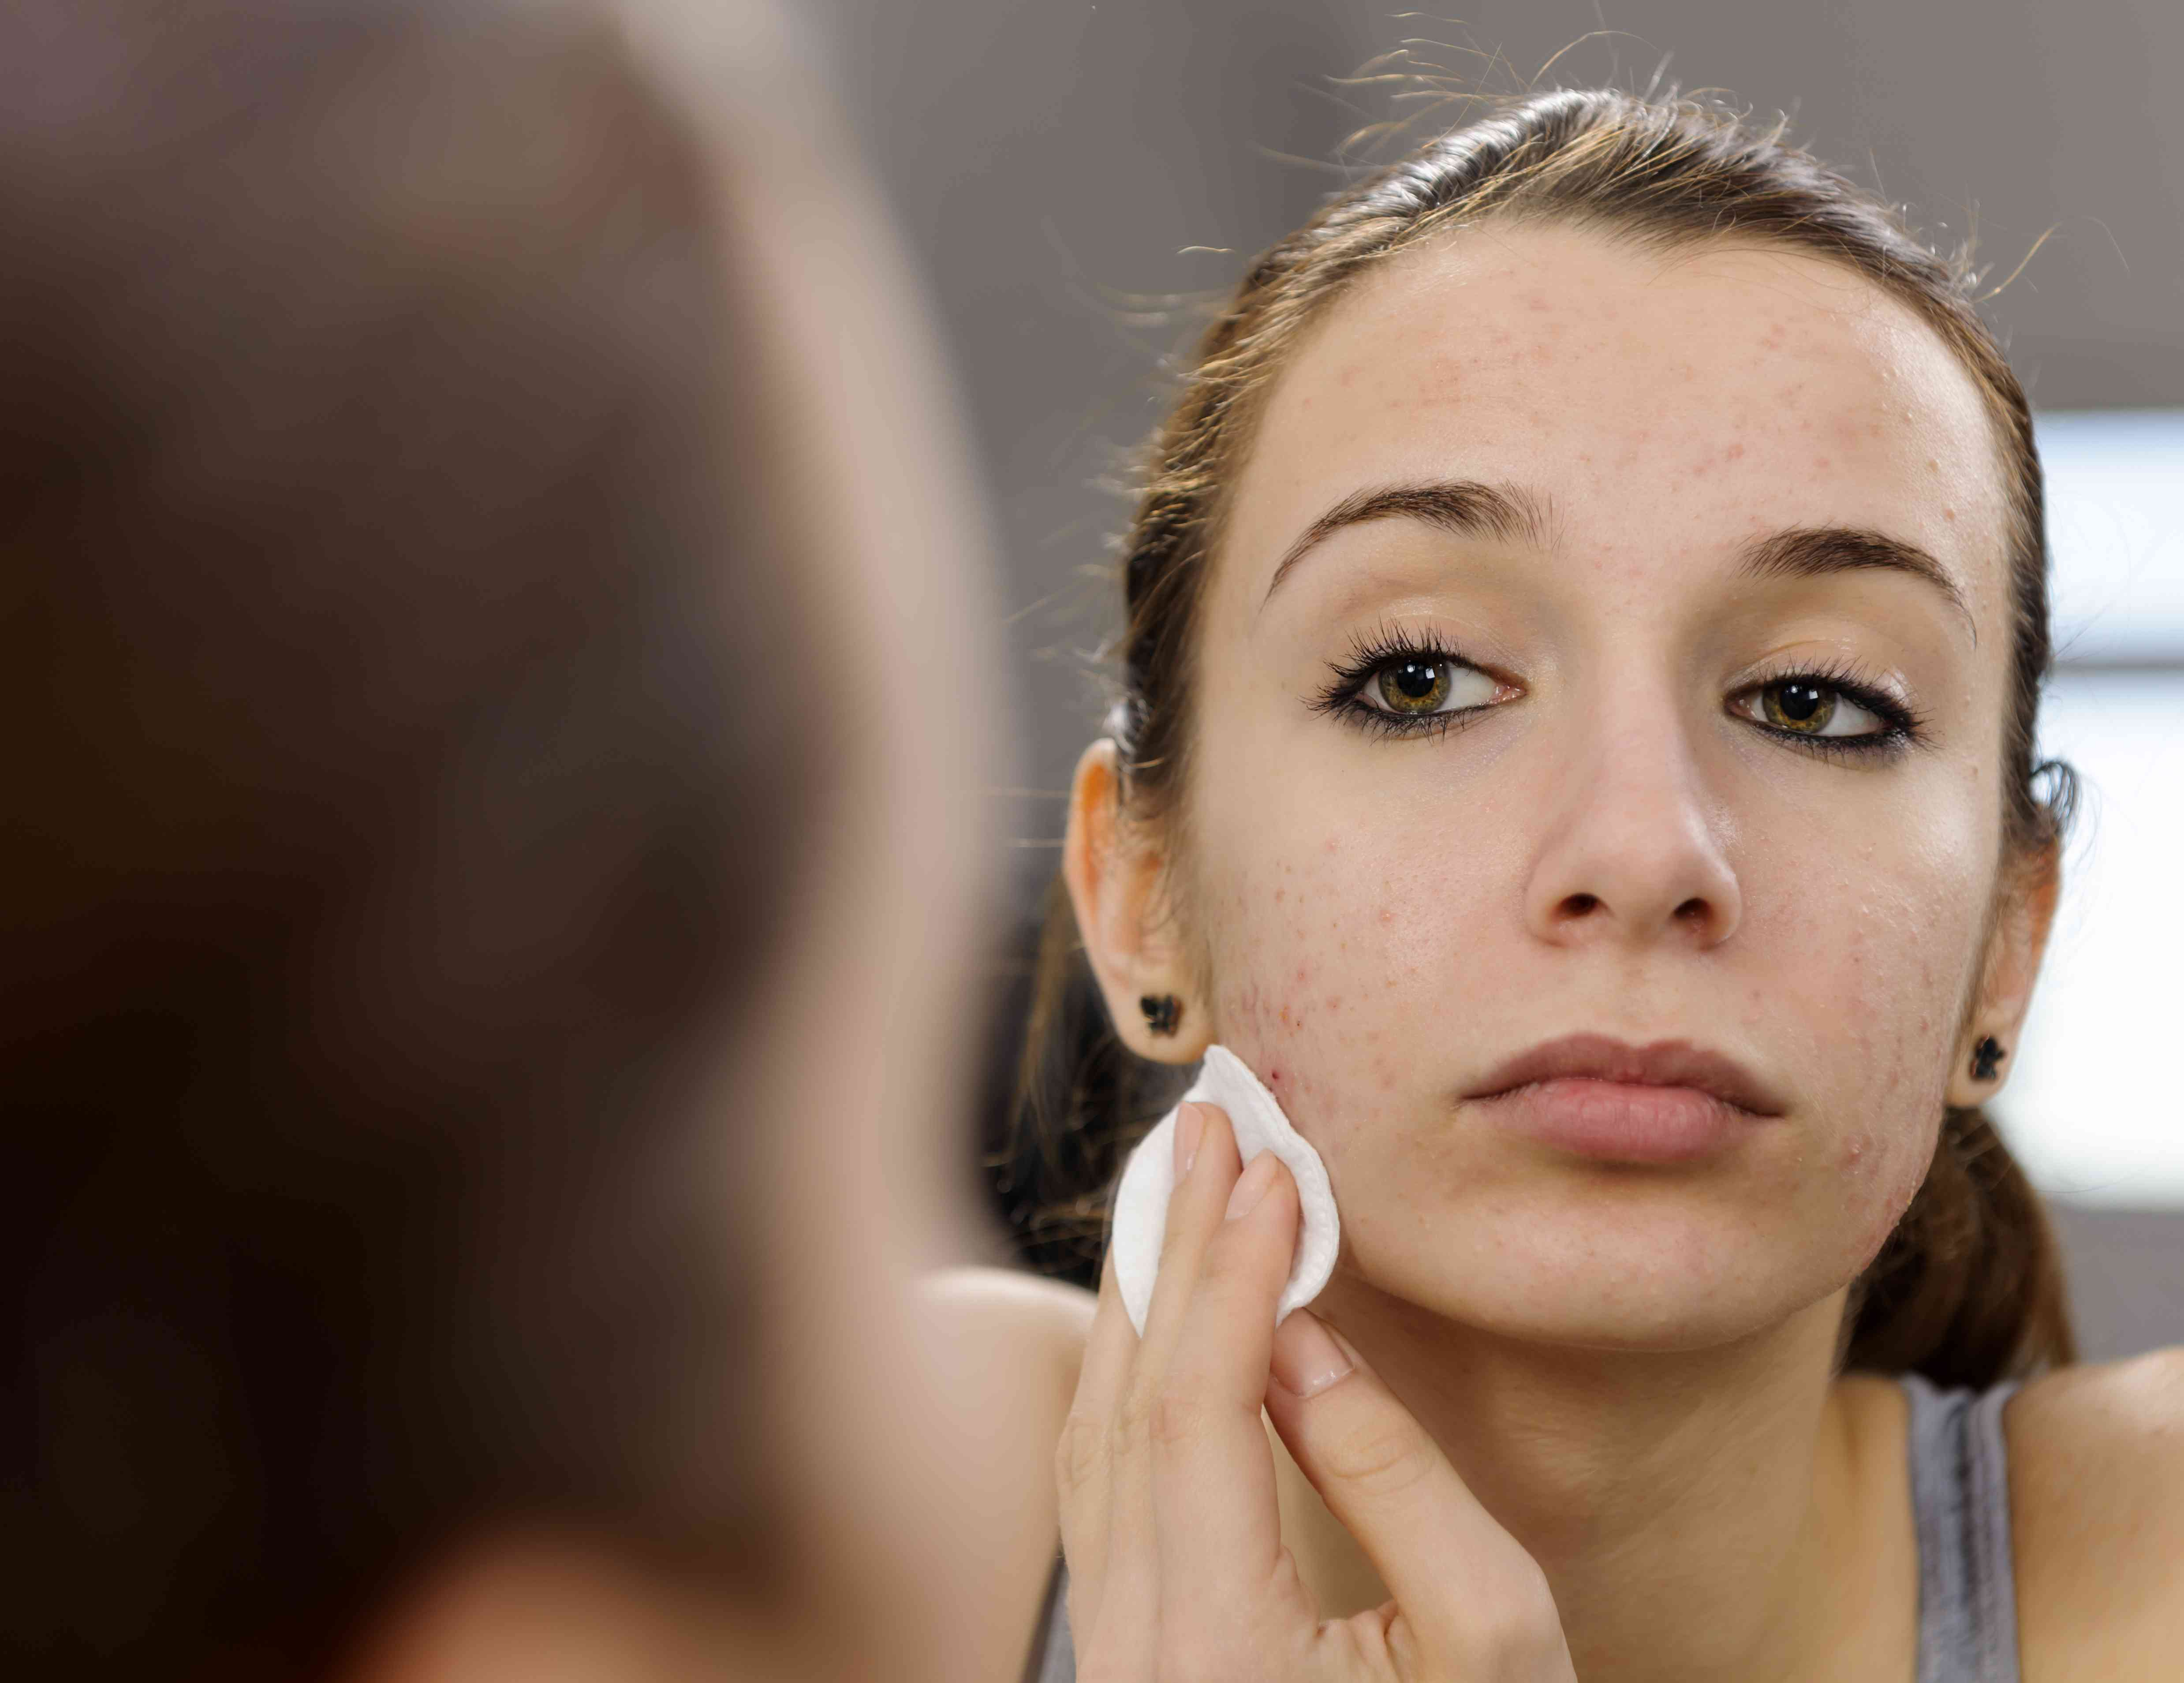 Teenager treating acne in mirror